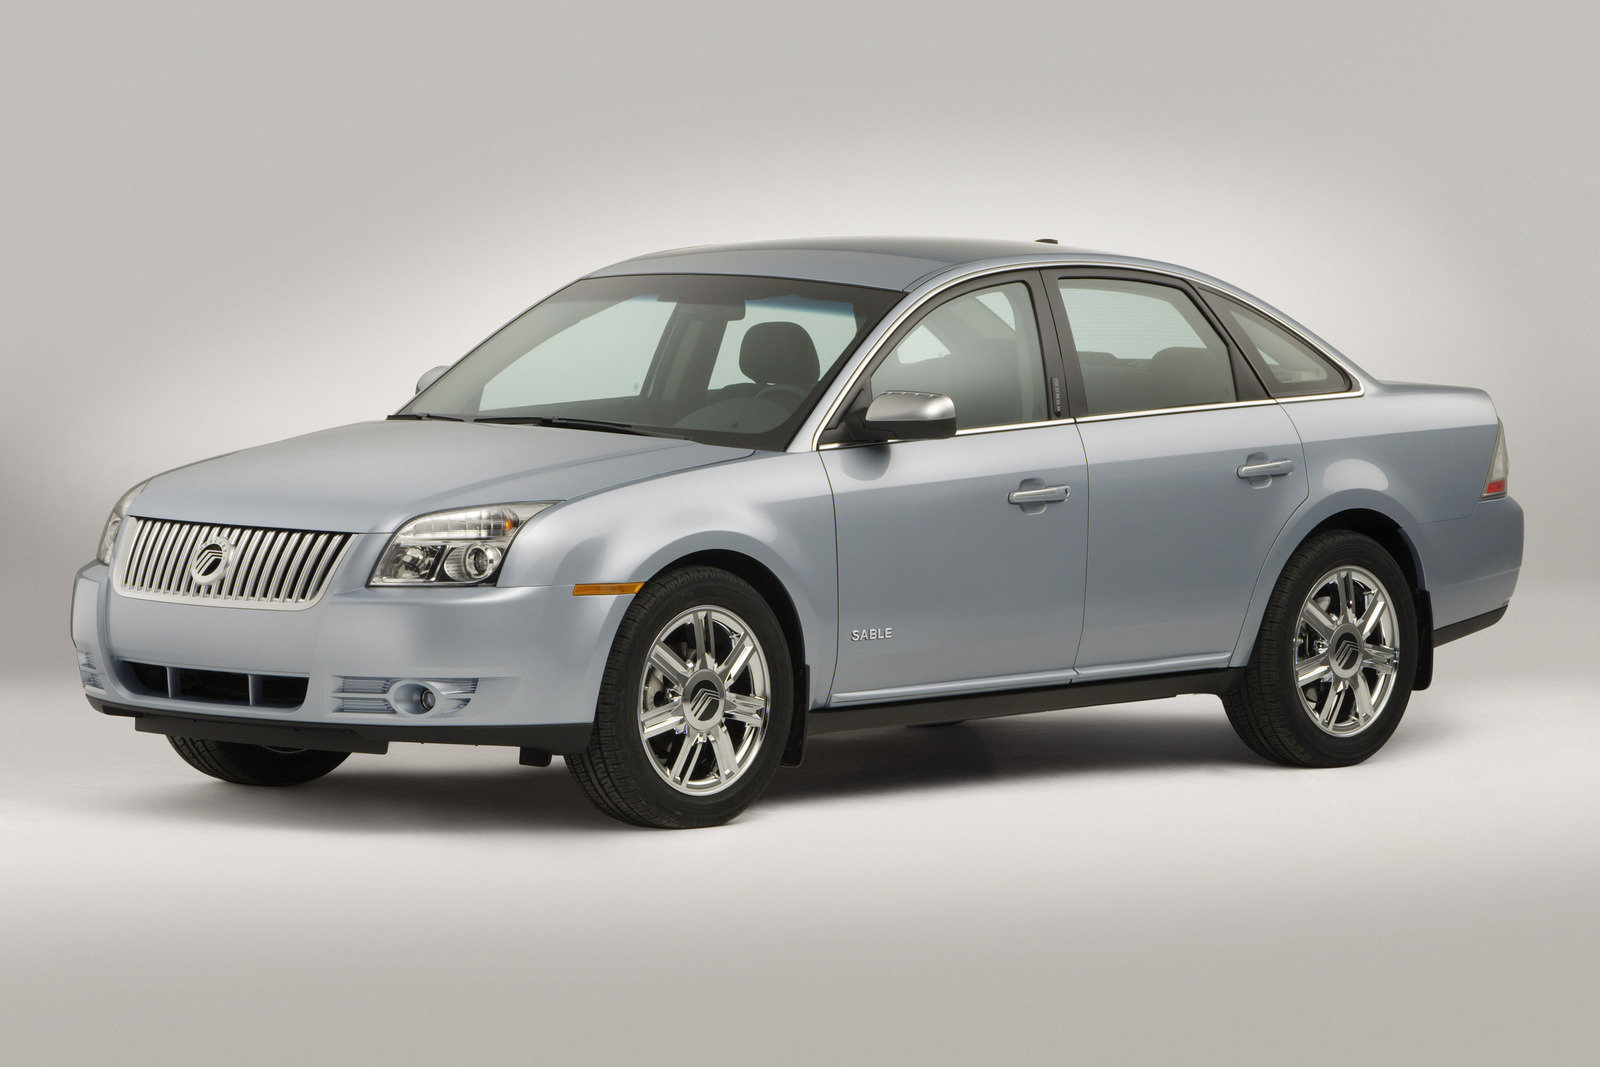 2008 Mercury Sable Review - Top Speed